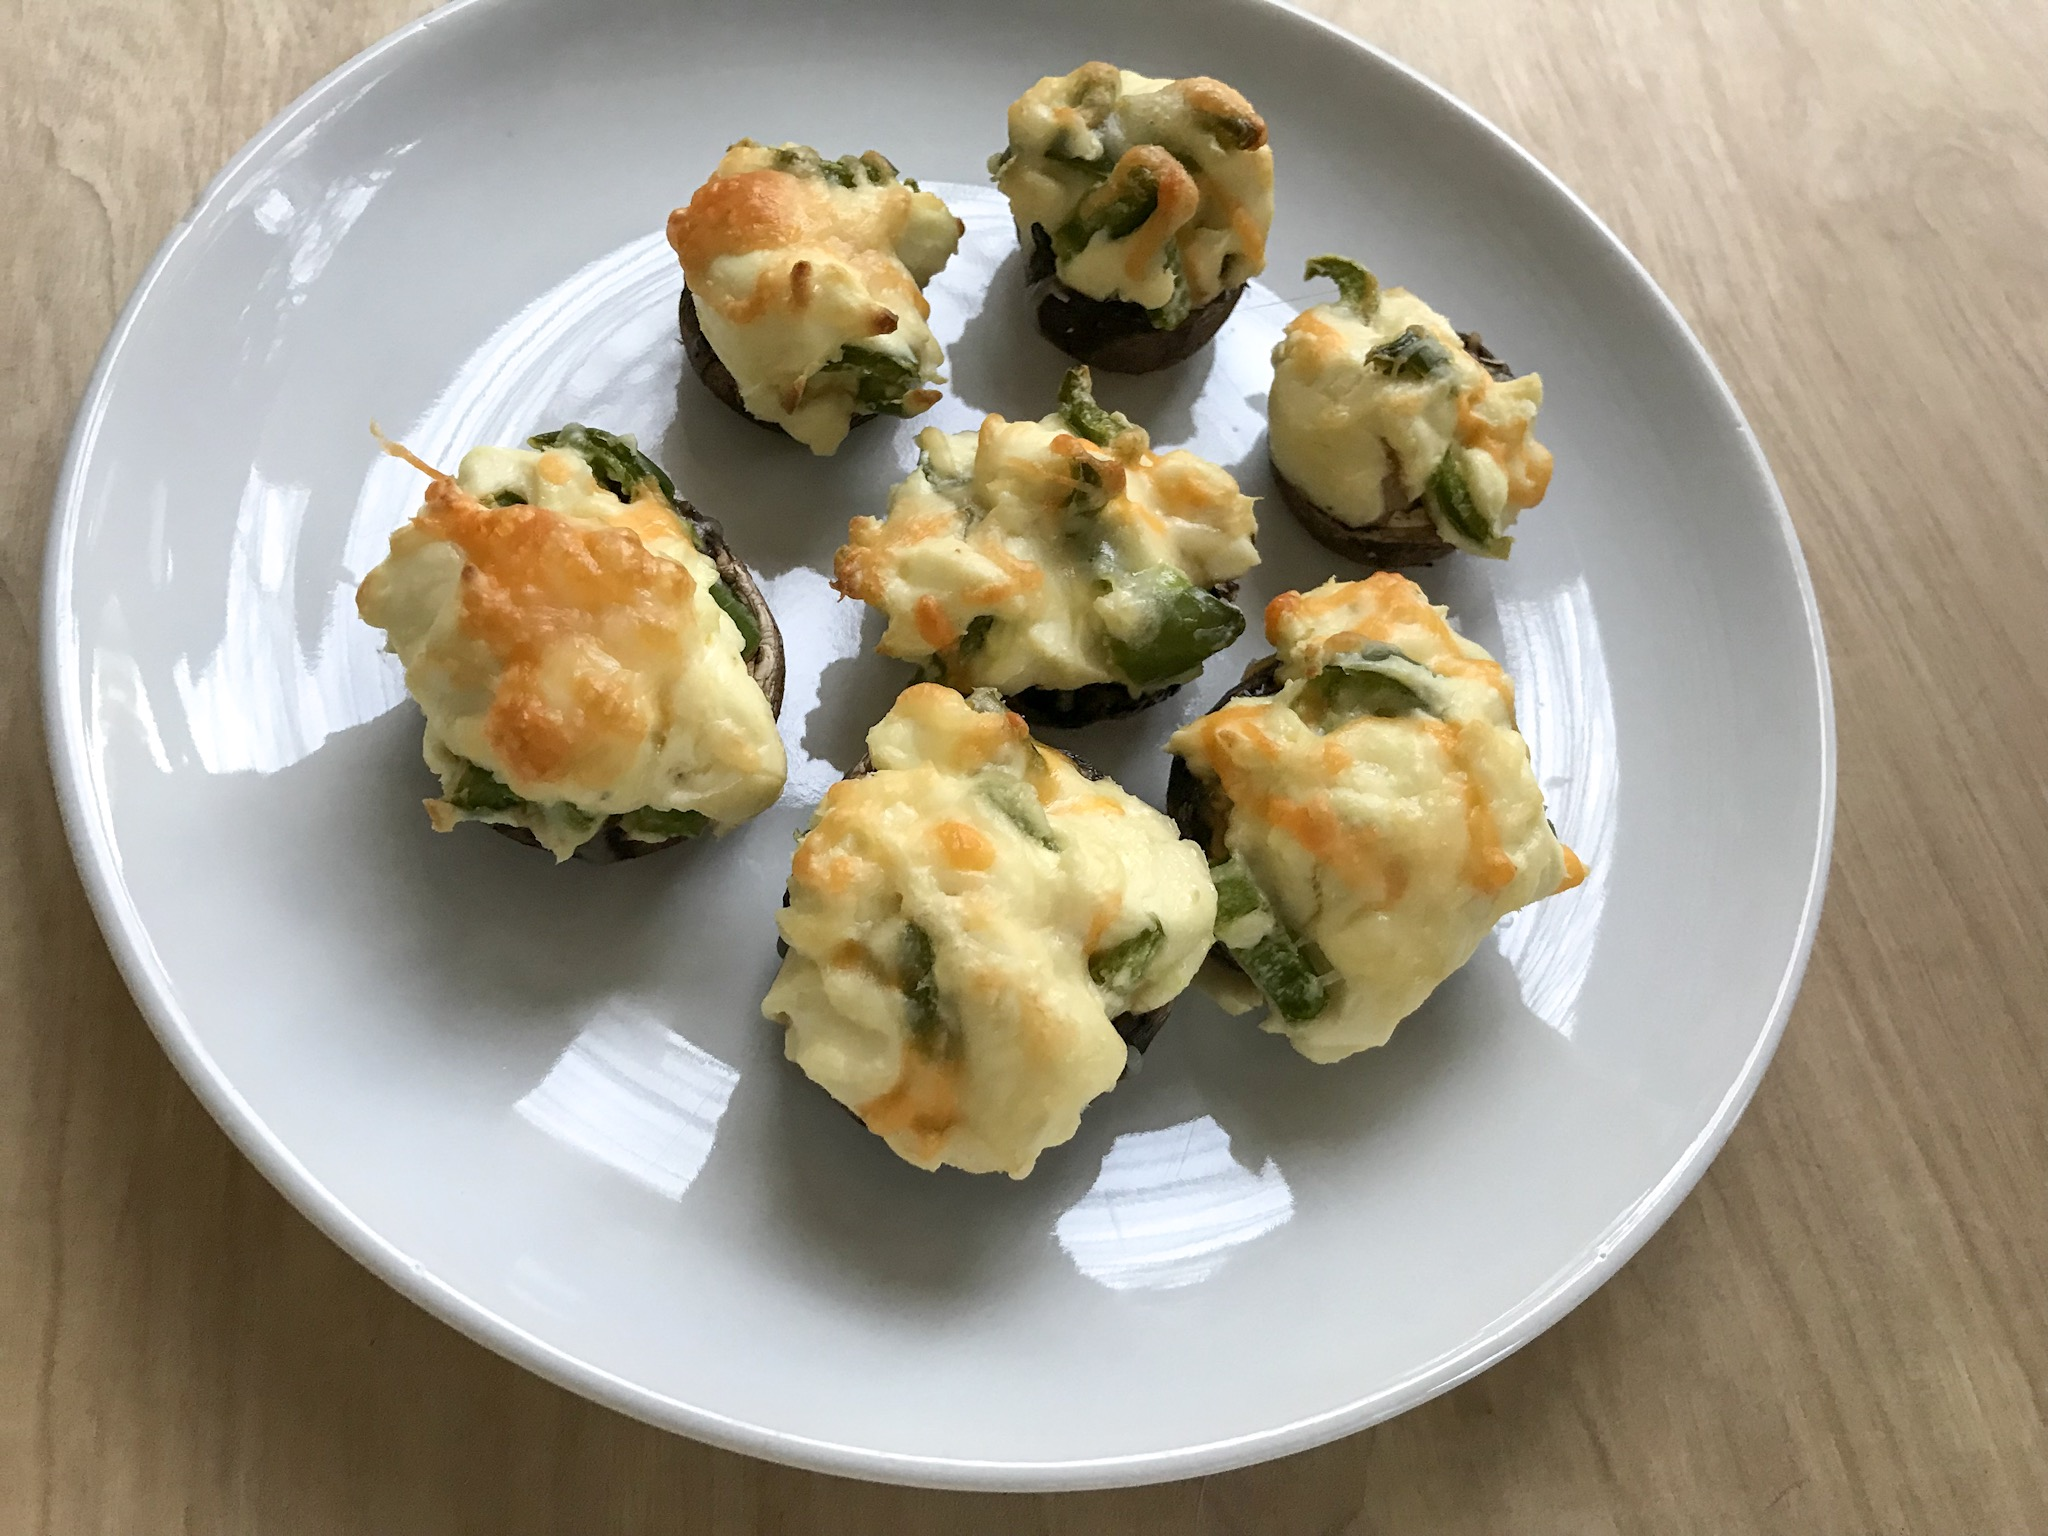 Picture of Jalapeno Popper Stuffed Mushrooms